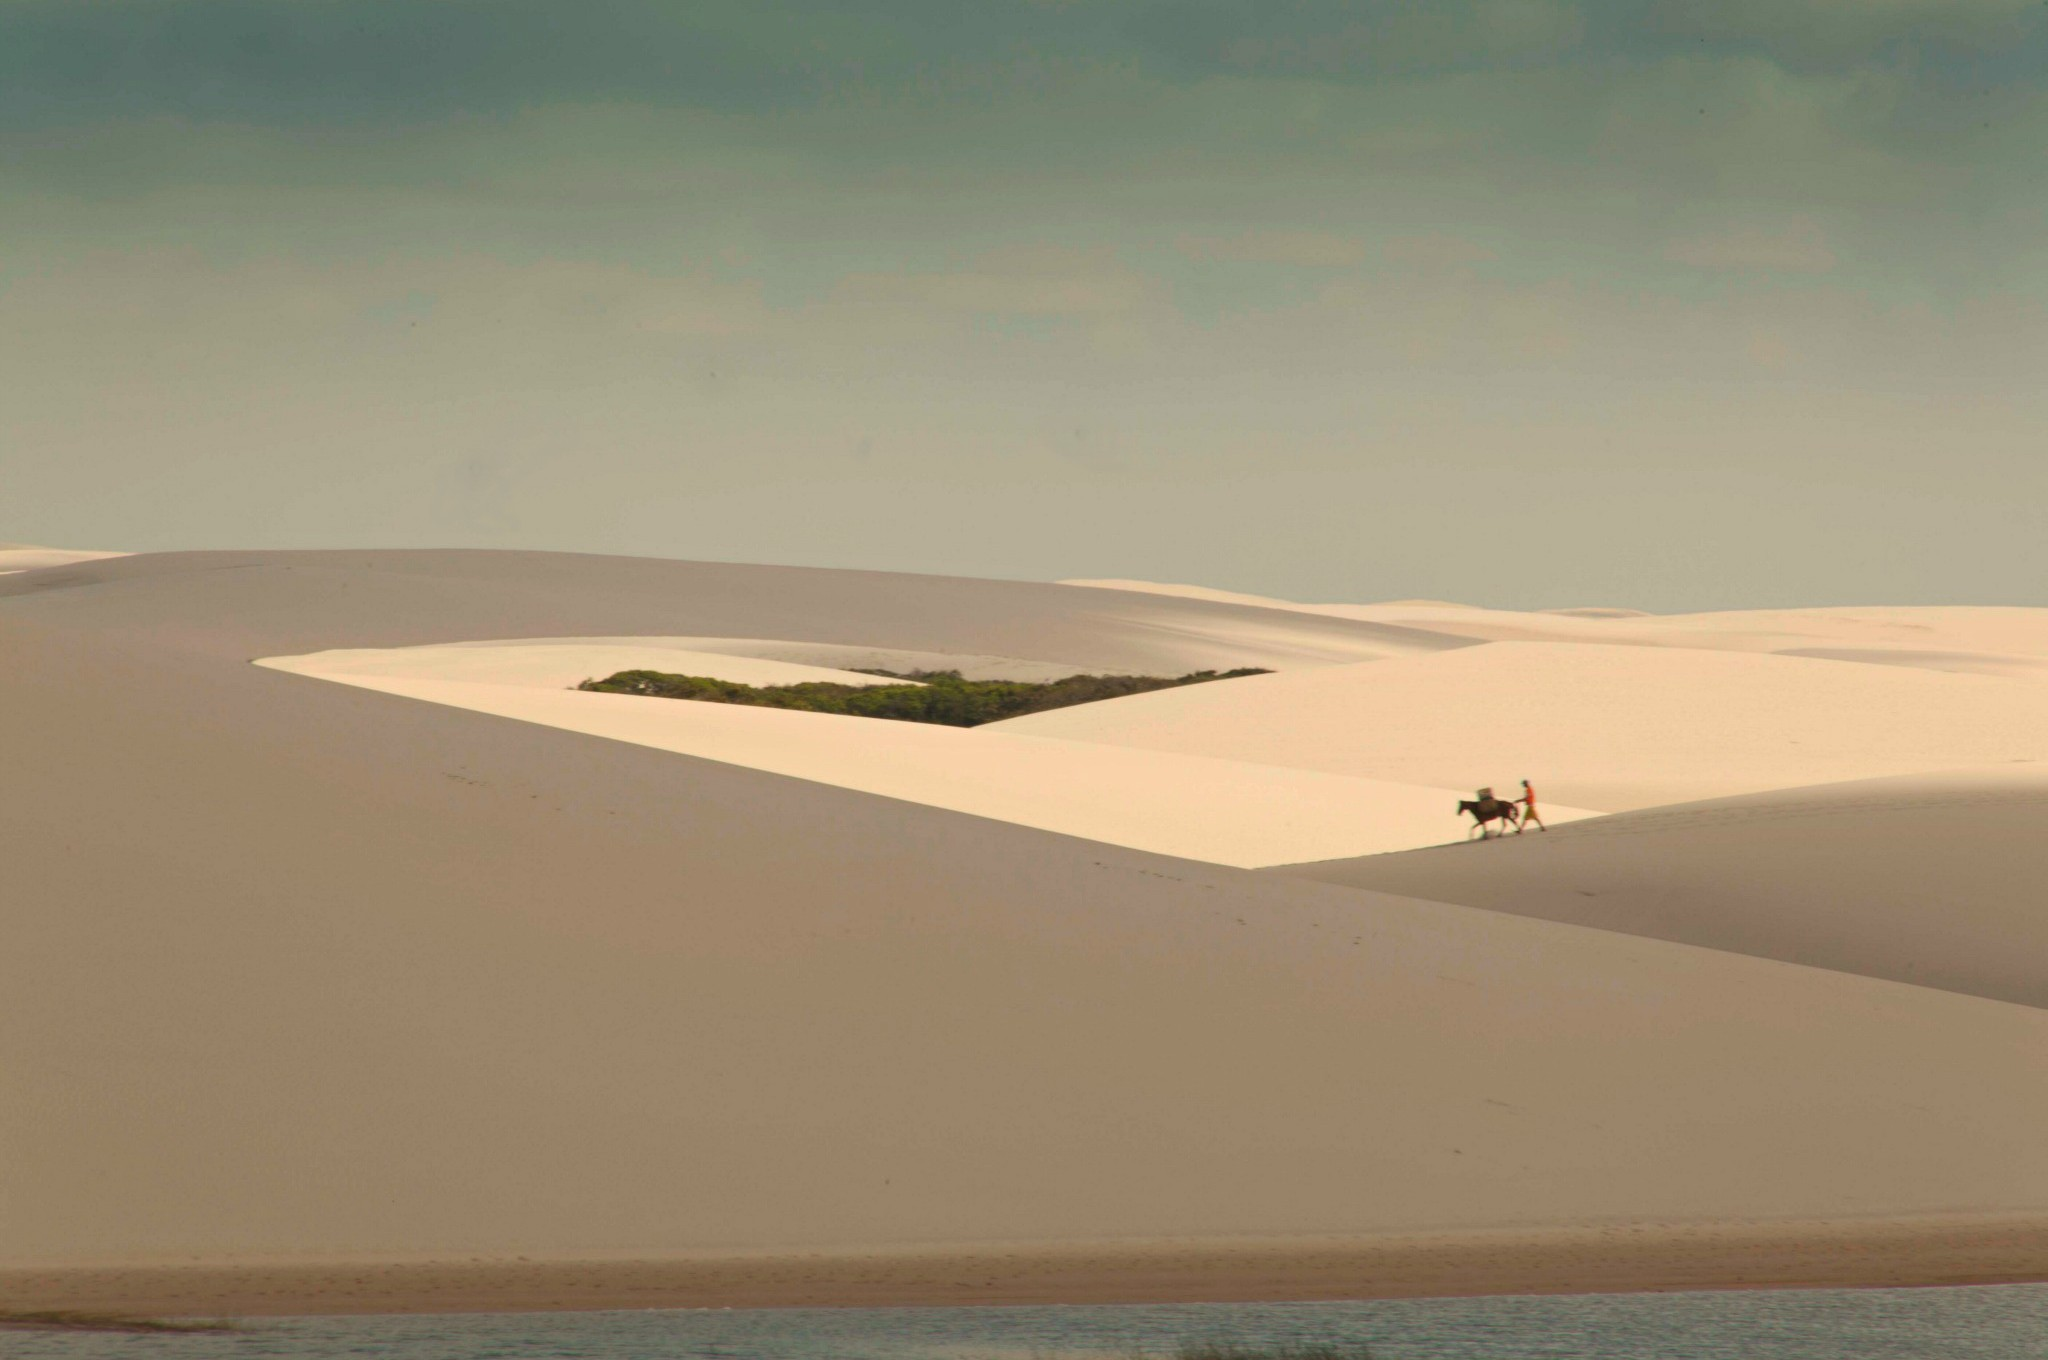 A men and his horse walking over dunes. Photo by Francois